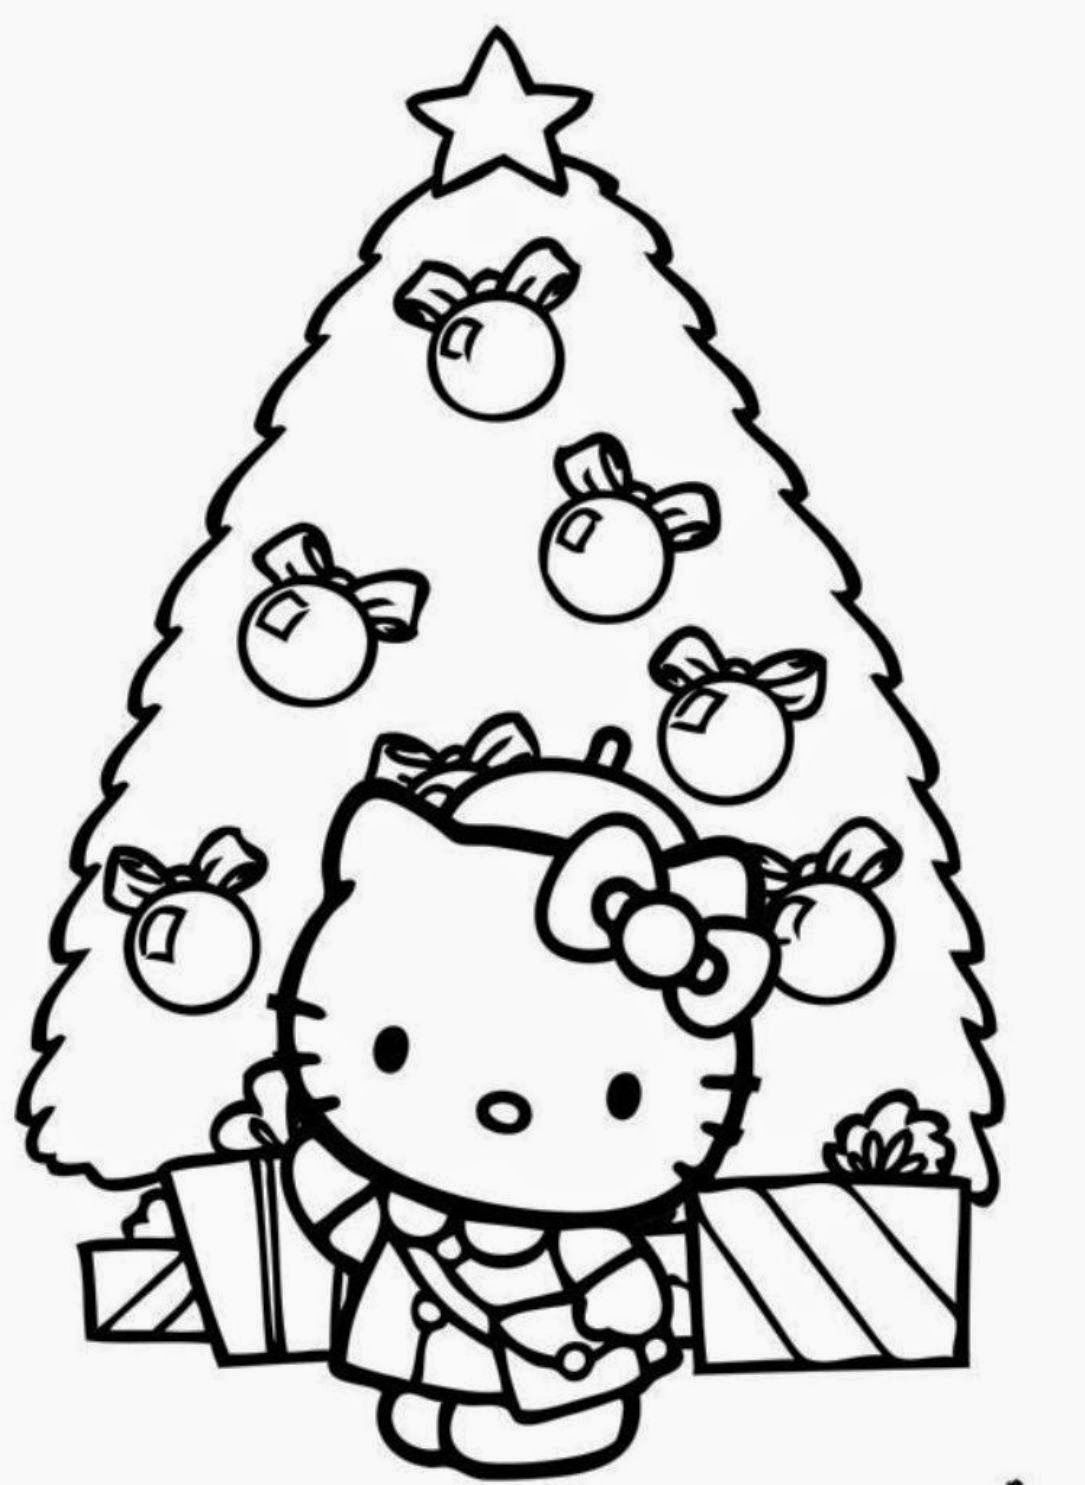 Hello Kitty Coloring Pages Rozhdestvenskie Raskraski Hello Kitty Iskusstvo Raskraski